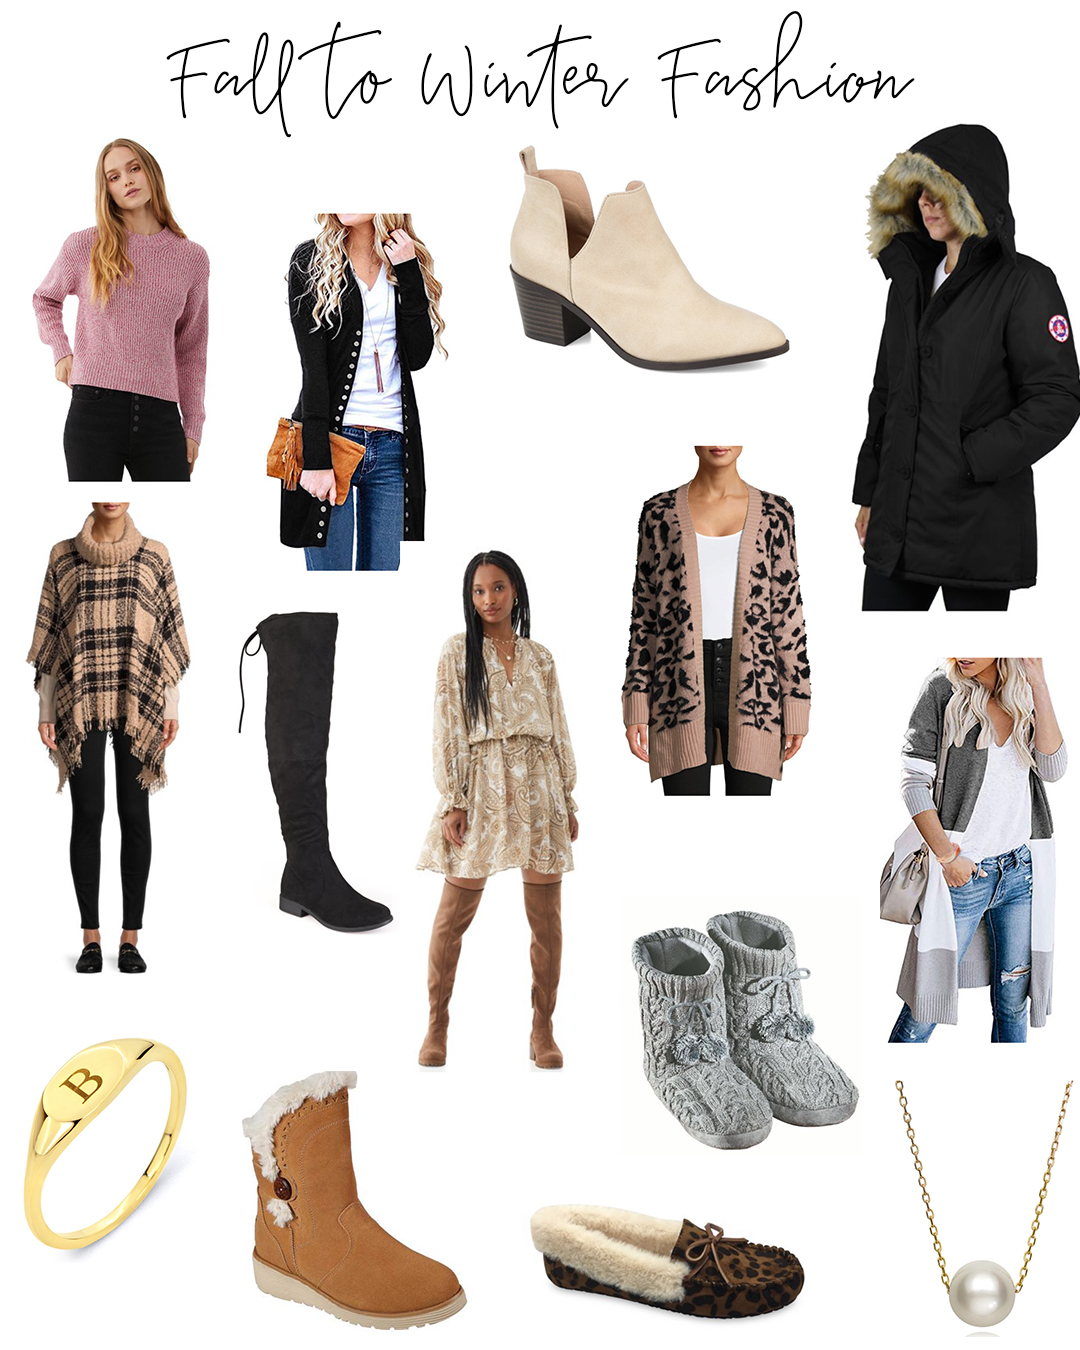 November & December 2020 Fashion Ideas - Affordable & Trendy Winter Wear to order as gifts or for youself. Jackets, accessories, tops and more!